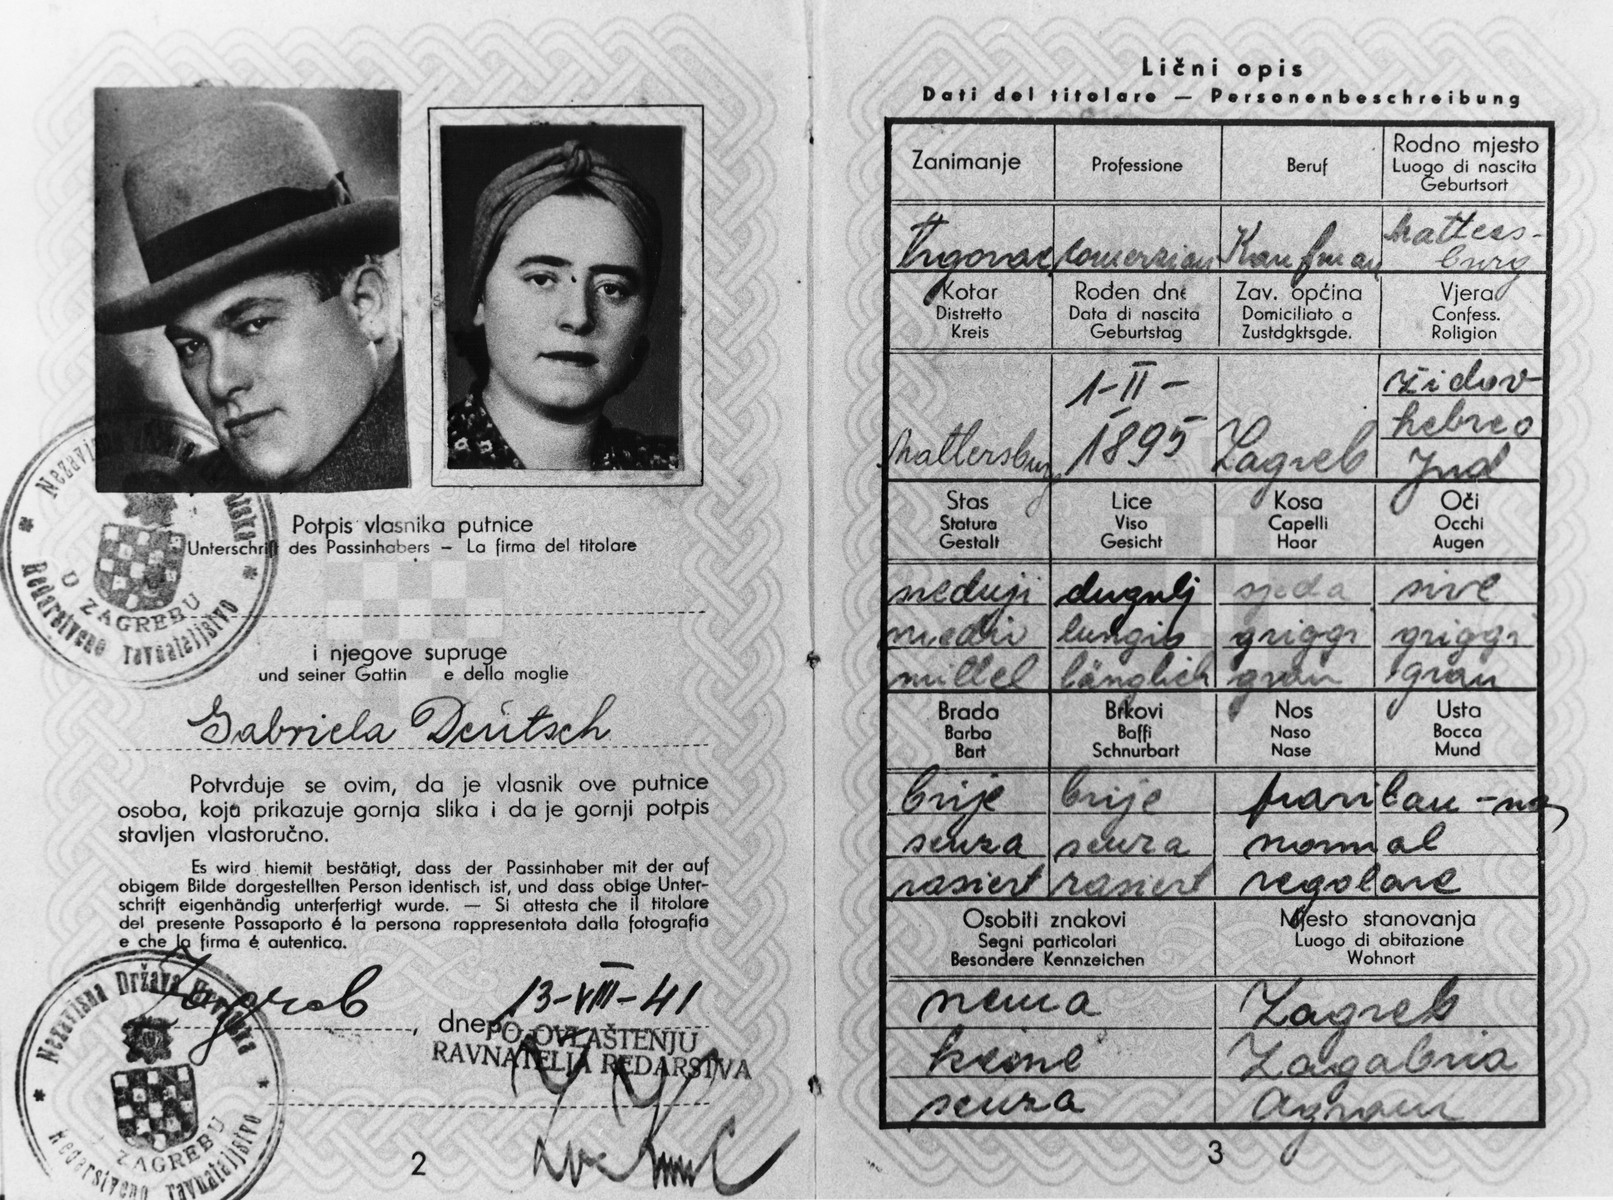 Croatian passport issued to a Jewish family, Josef and Gabriela Deutsch and their three children, in Zagreb on August 13, 1941.